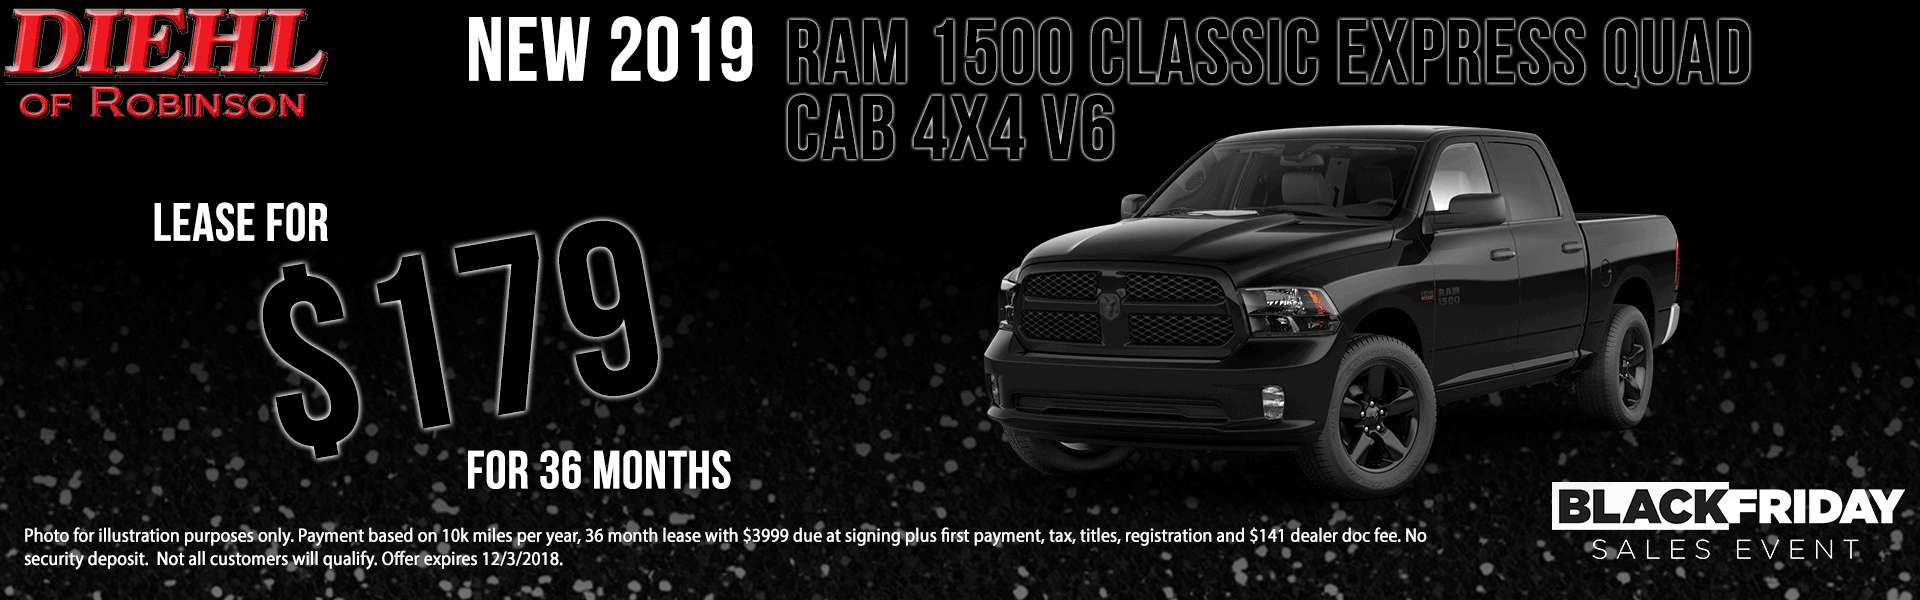 Diehl of Robinson Township. Chrysler jeep dodge ram New used service collision parts and accessories. NEW 2019 RAM 1500 CLASSIC EXPRESS QUAD CAB® 4X4 6'4